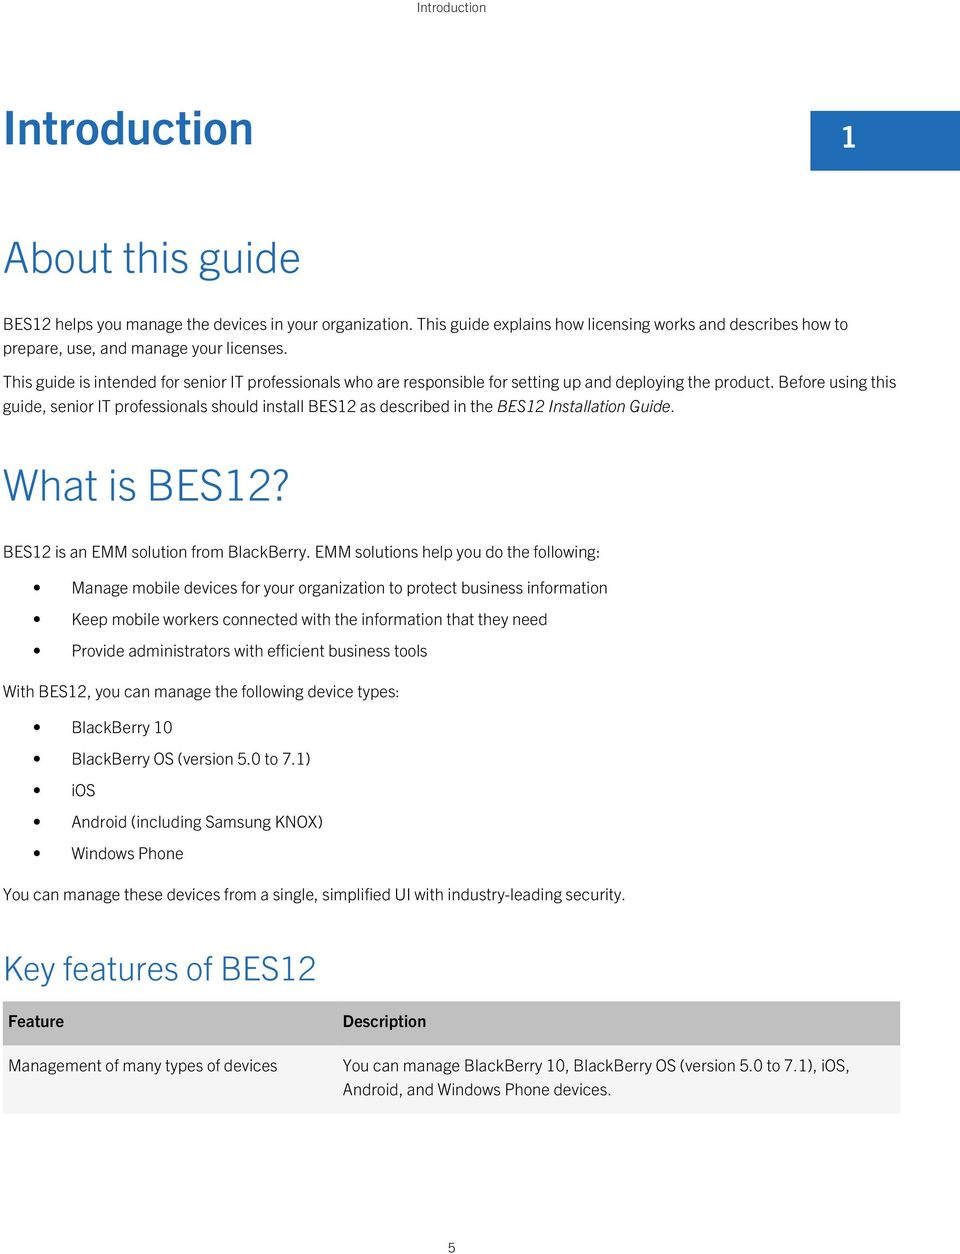 This guide is intended for senior IT professionals who are responsible for setting up and deploying the product.